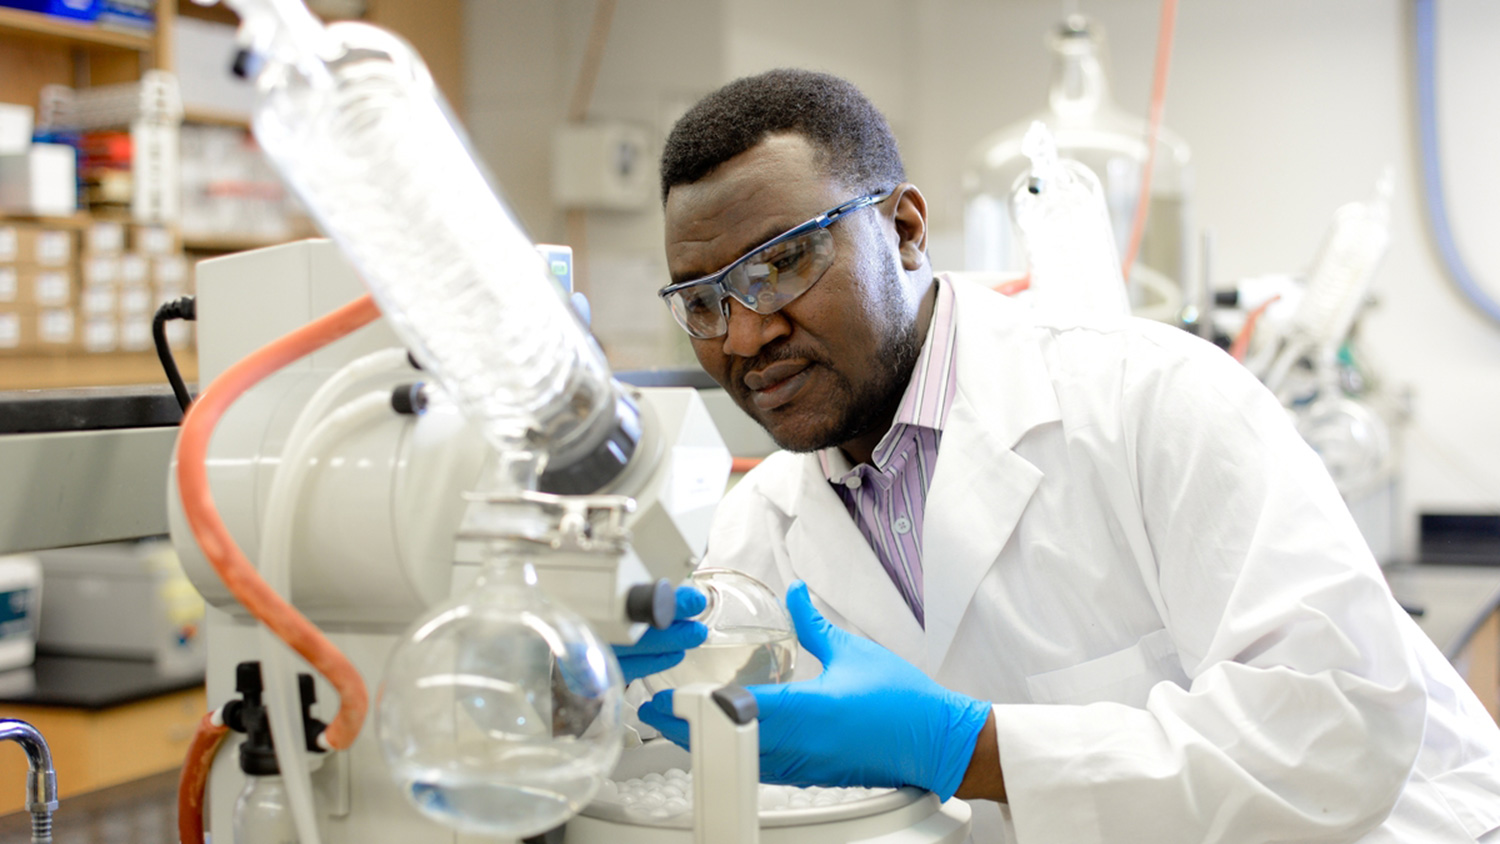 Male researcher works in lab.